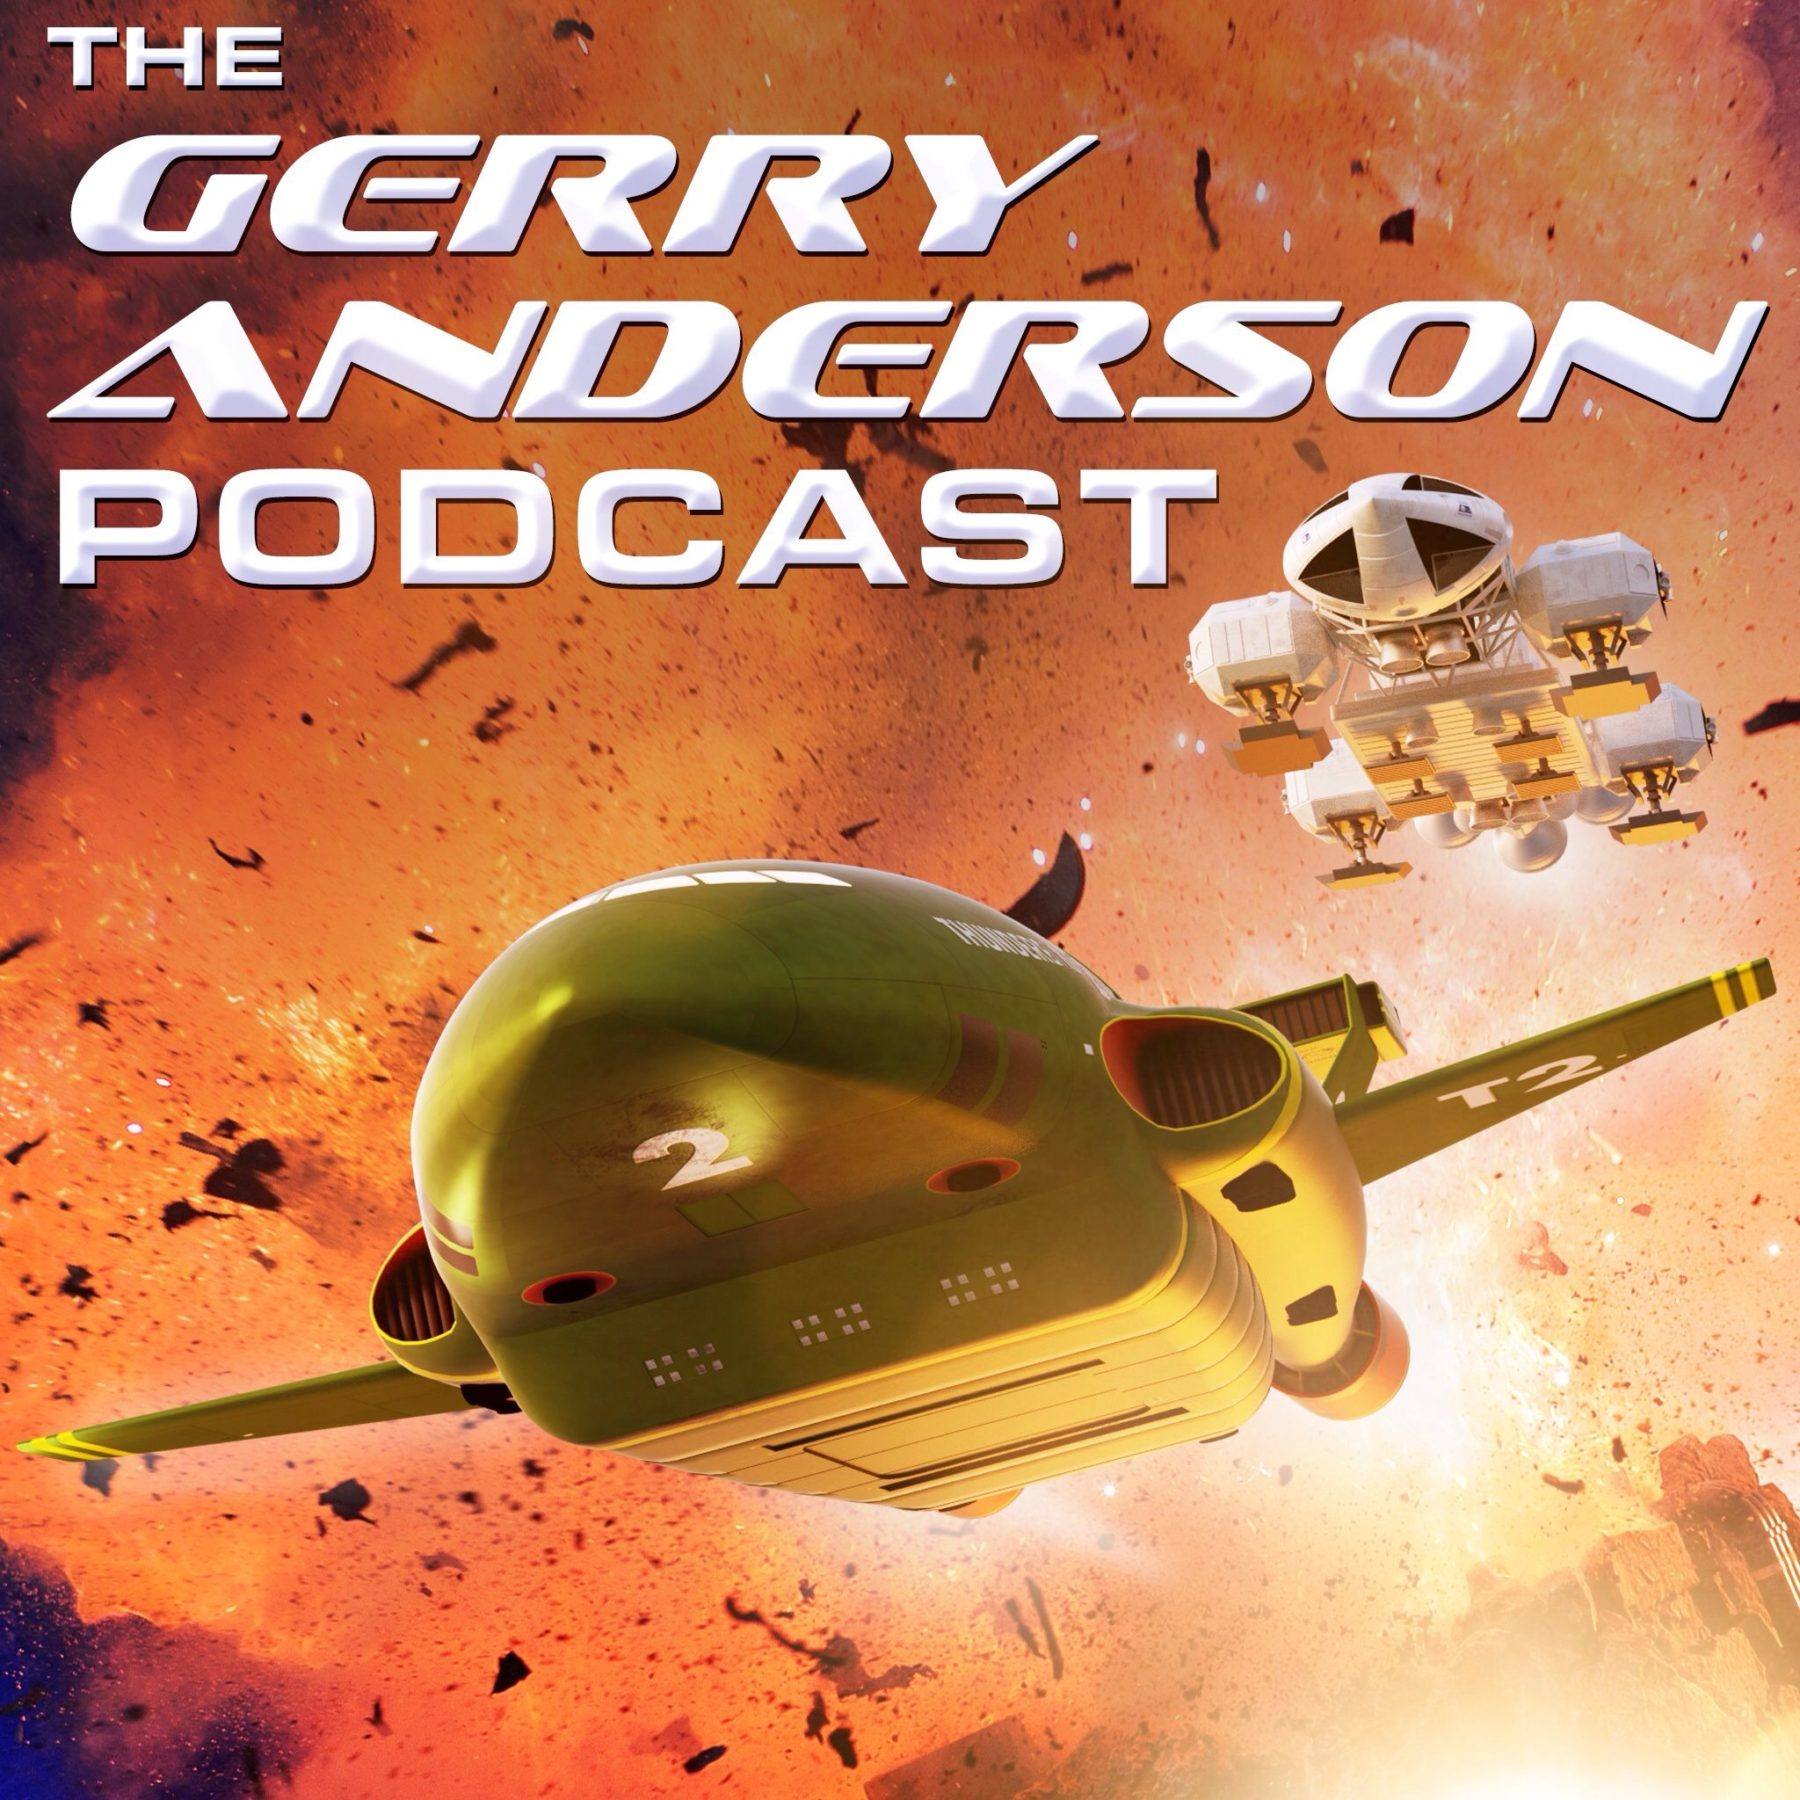 Gerry Anderson Podcast Launches